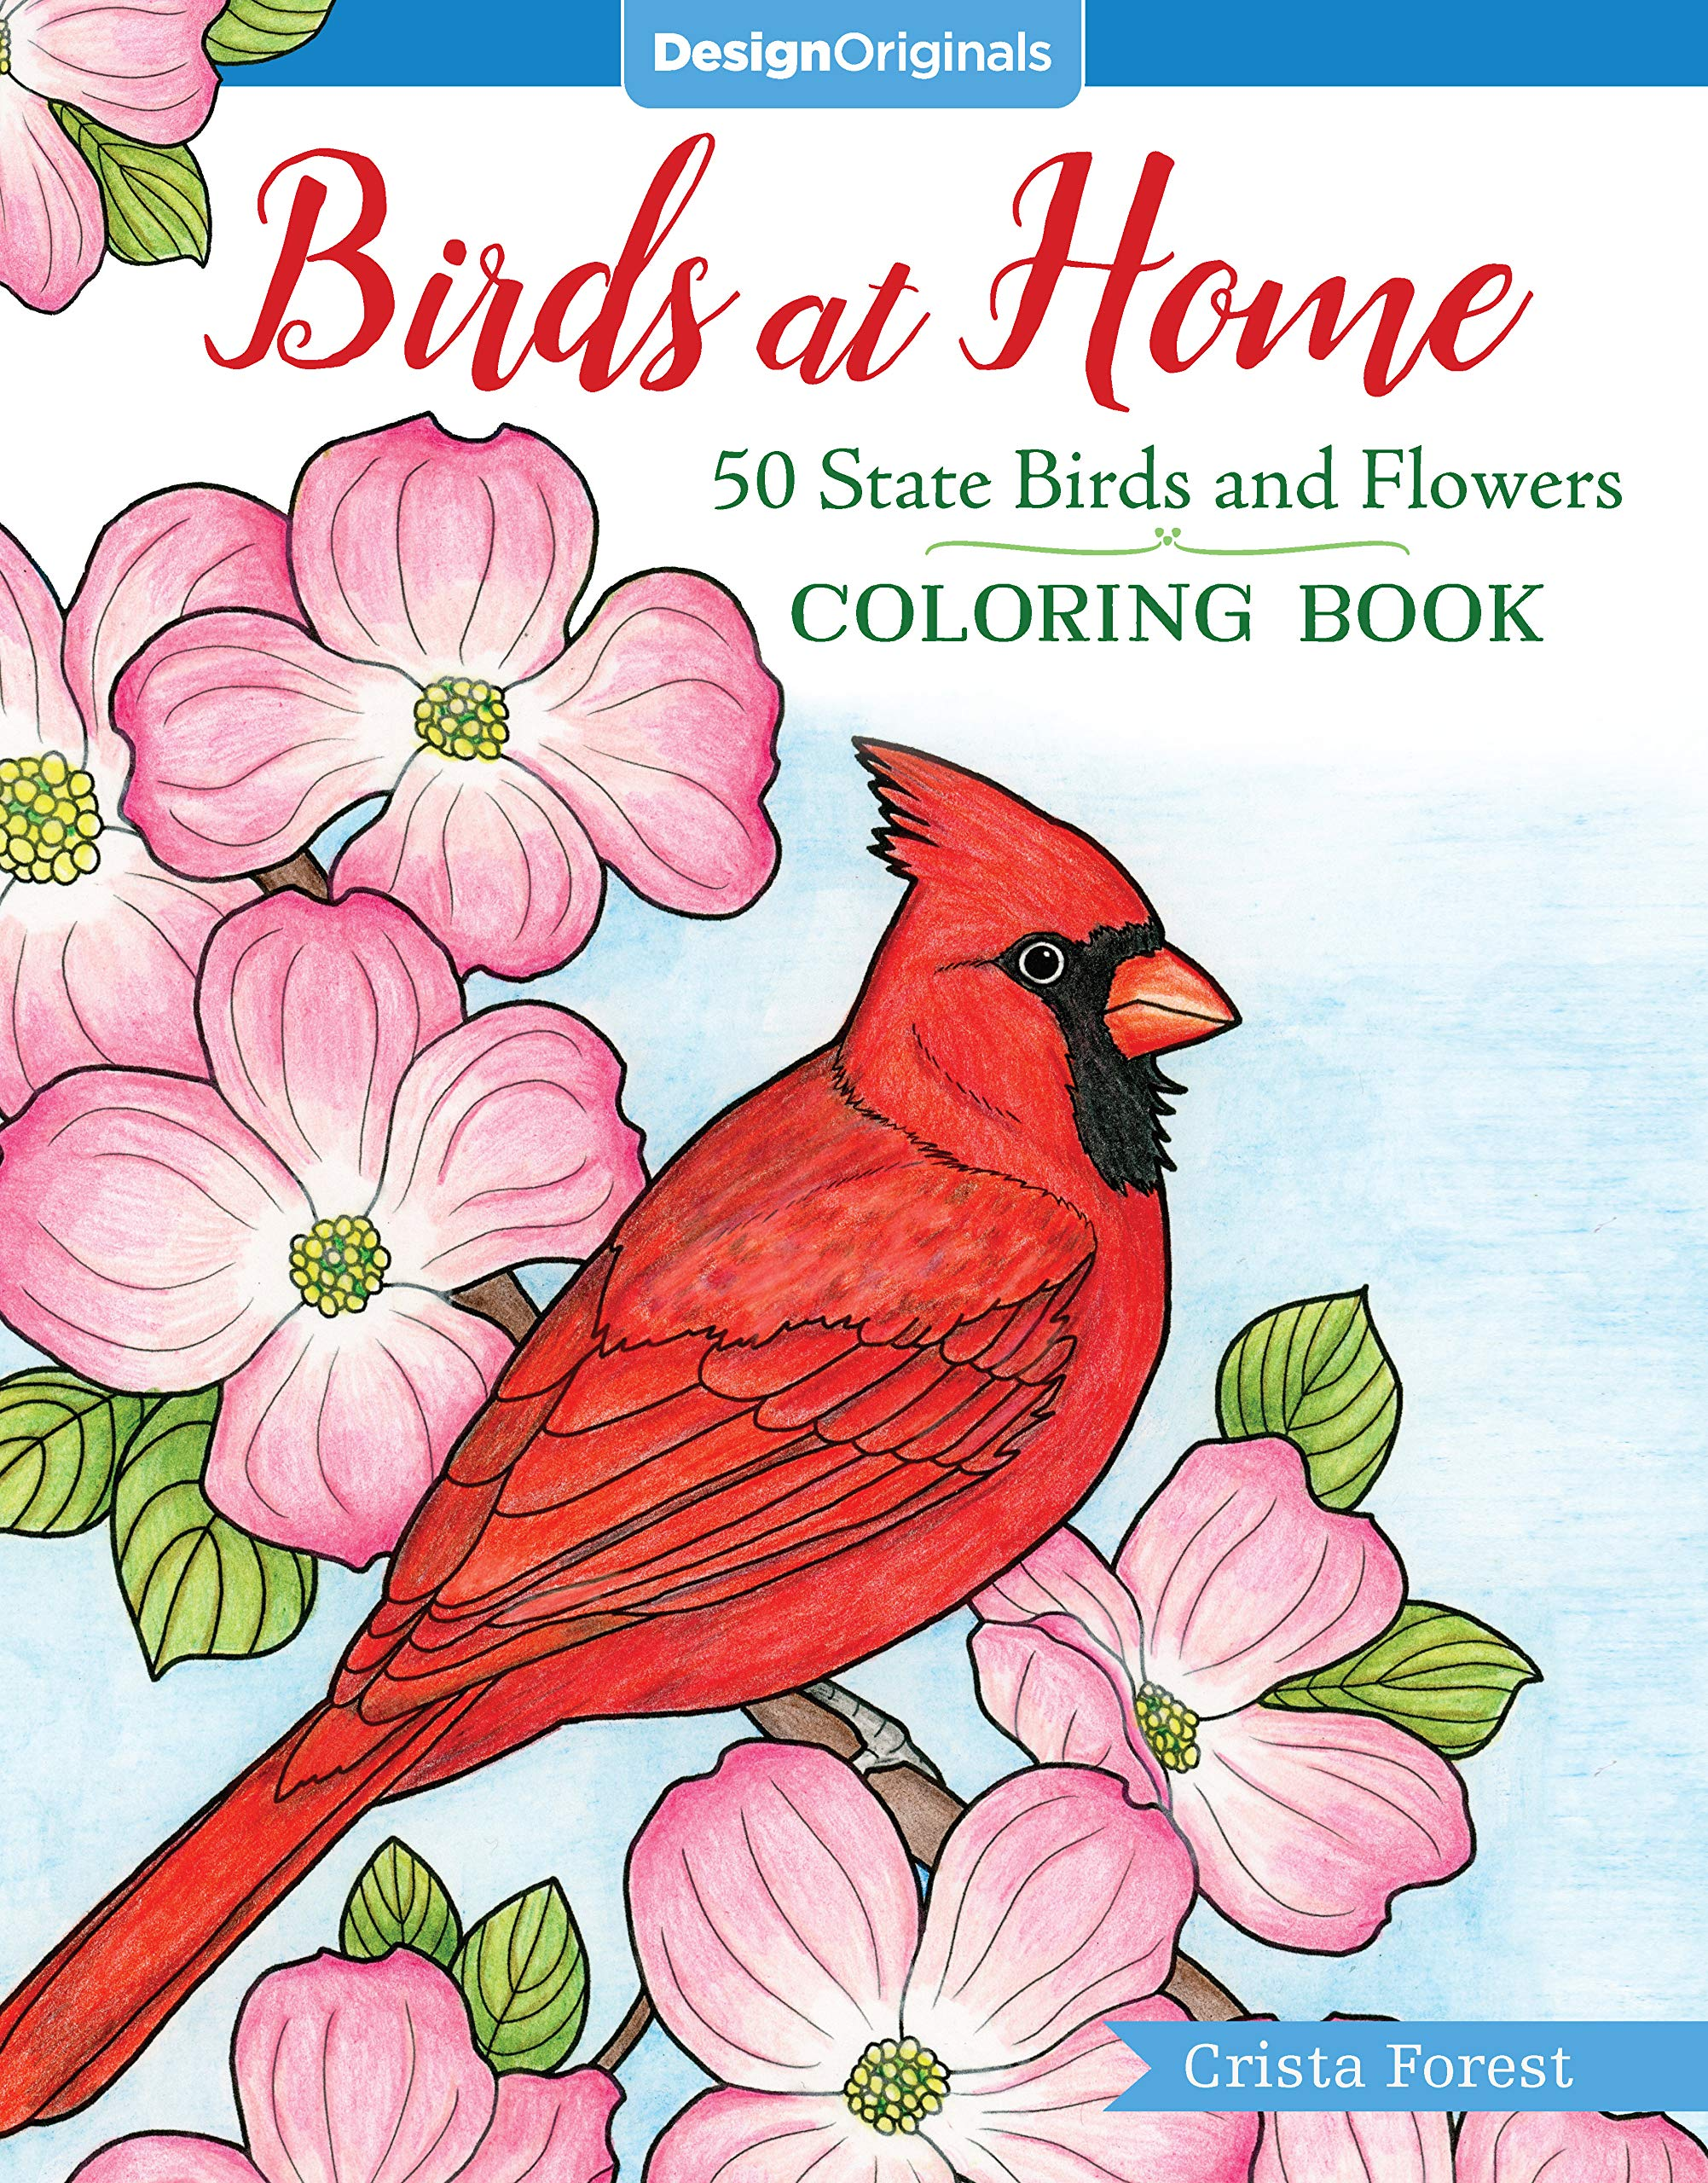 Amazon.com: Birds at Home Coloring Book: 50 State Birds and ...